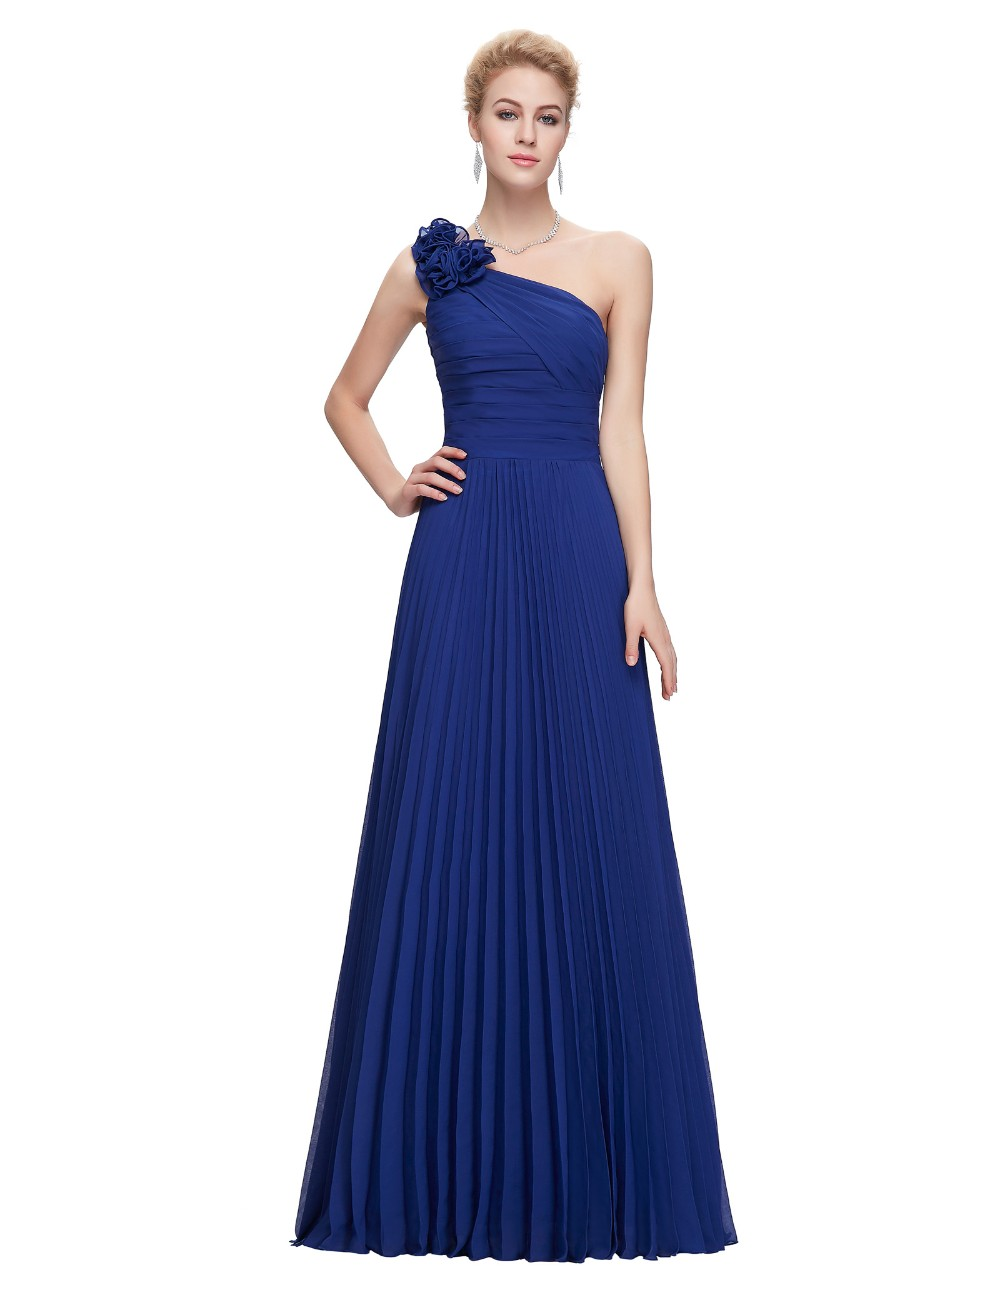 Grace Karin Chiffon Long Evening Dress One Shoulder Pleated Red Green Purple Royal Blue Formal Evening Dress Party Gowns 2018 5